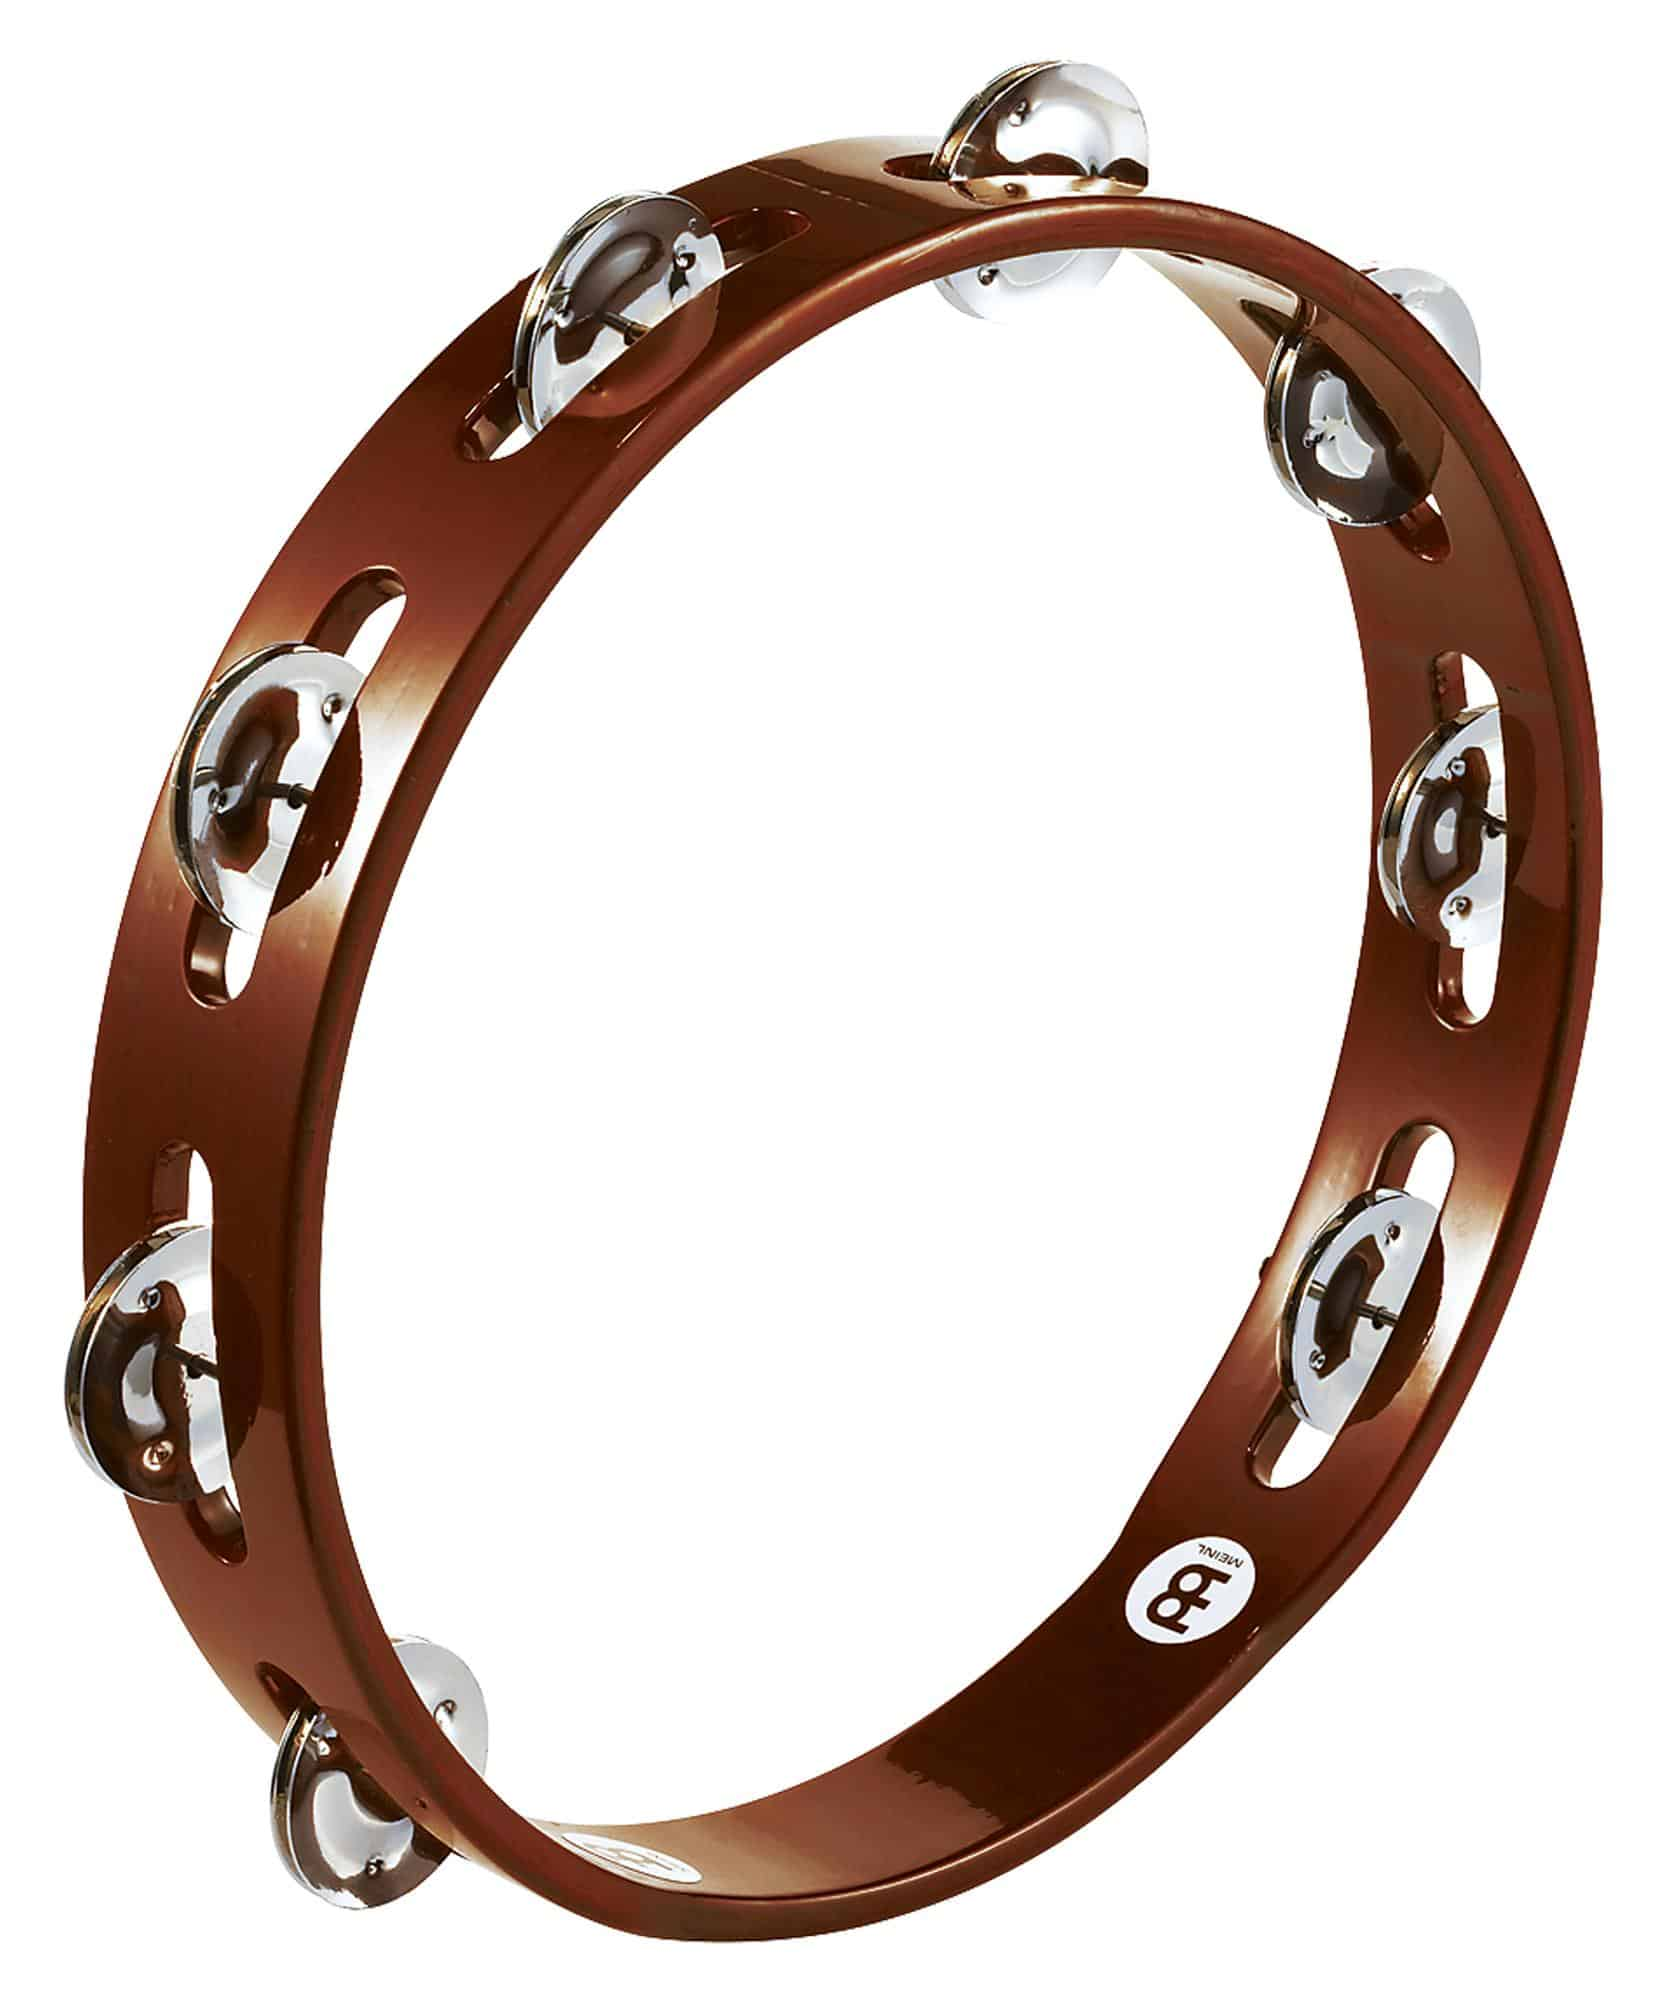 Meinl TA1AB Traditional Wood Tambourine